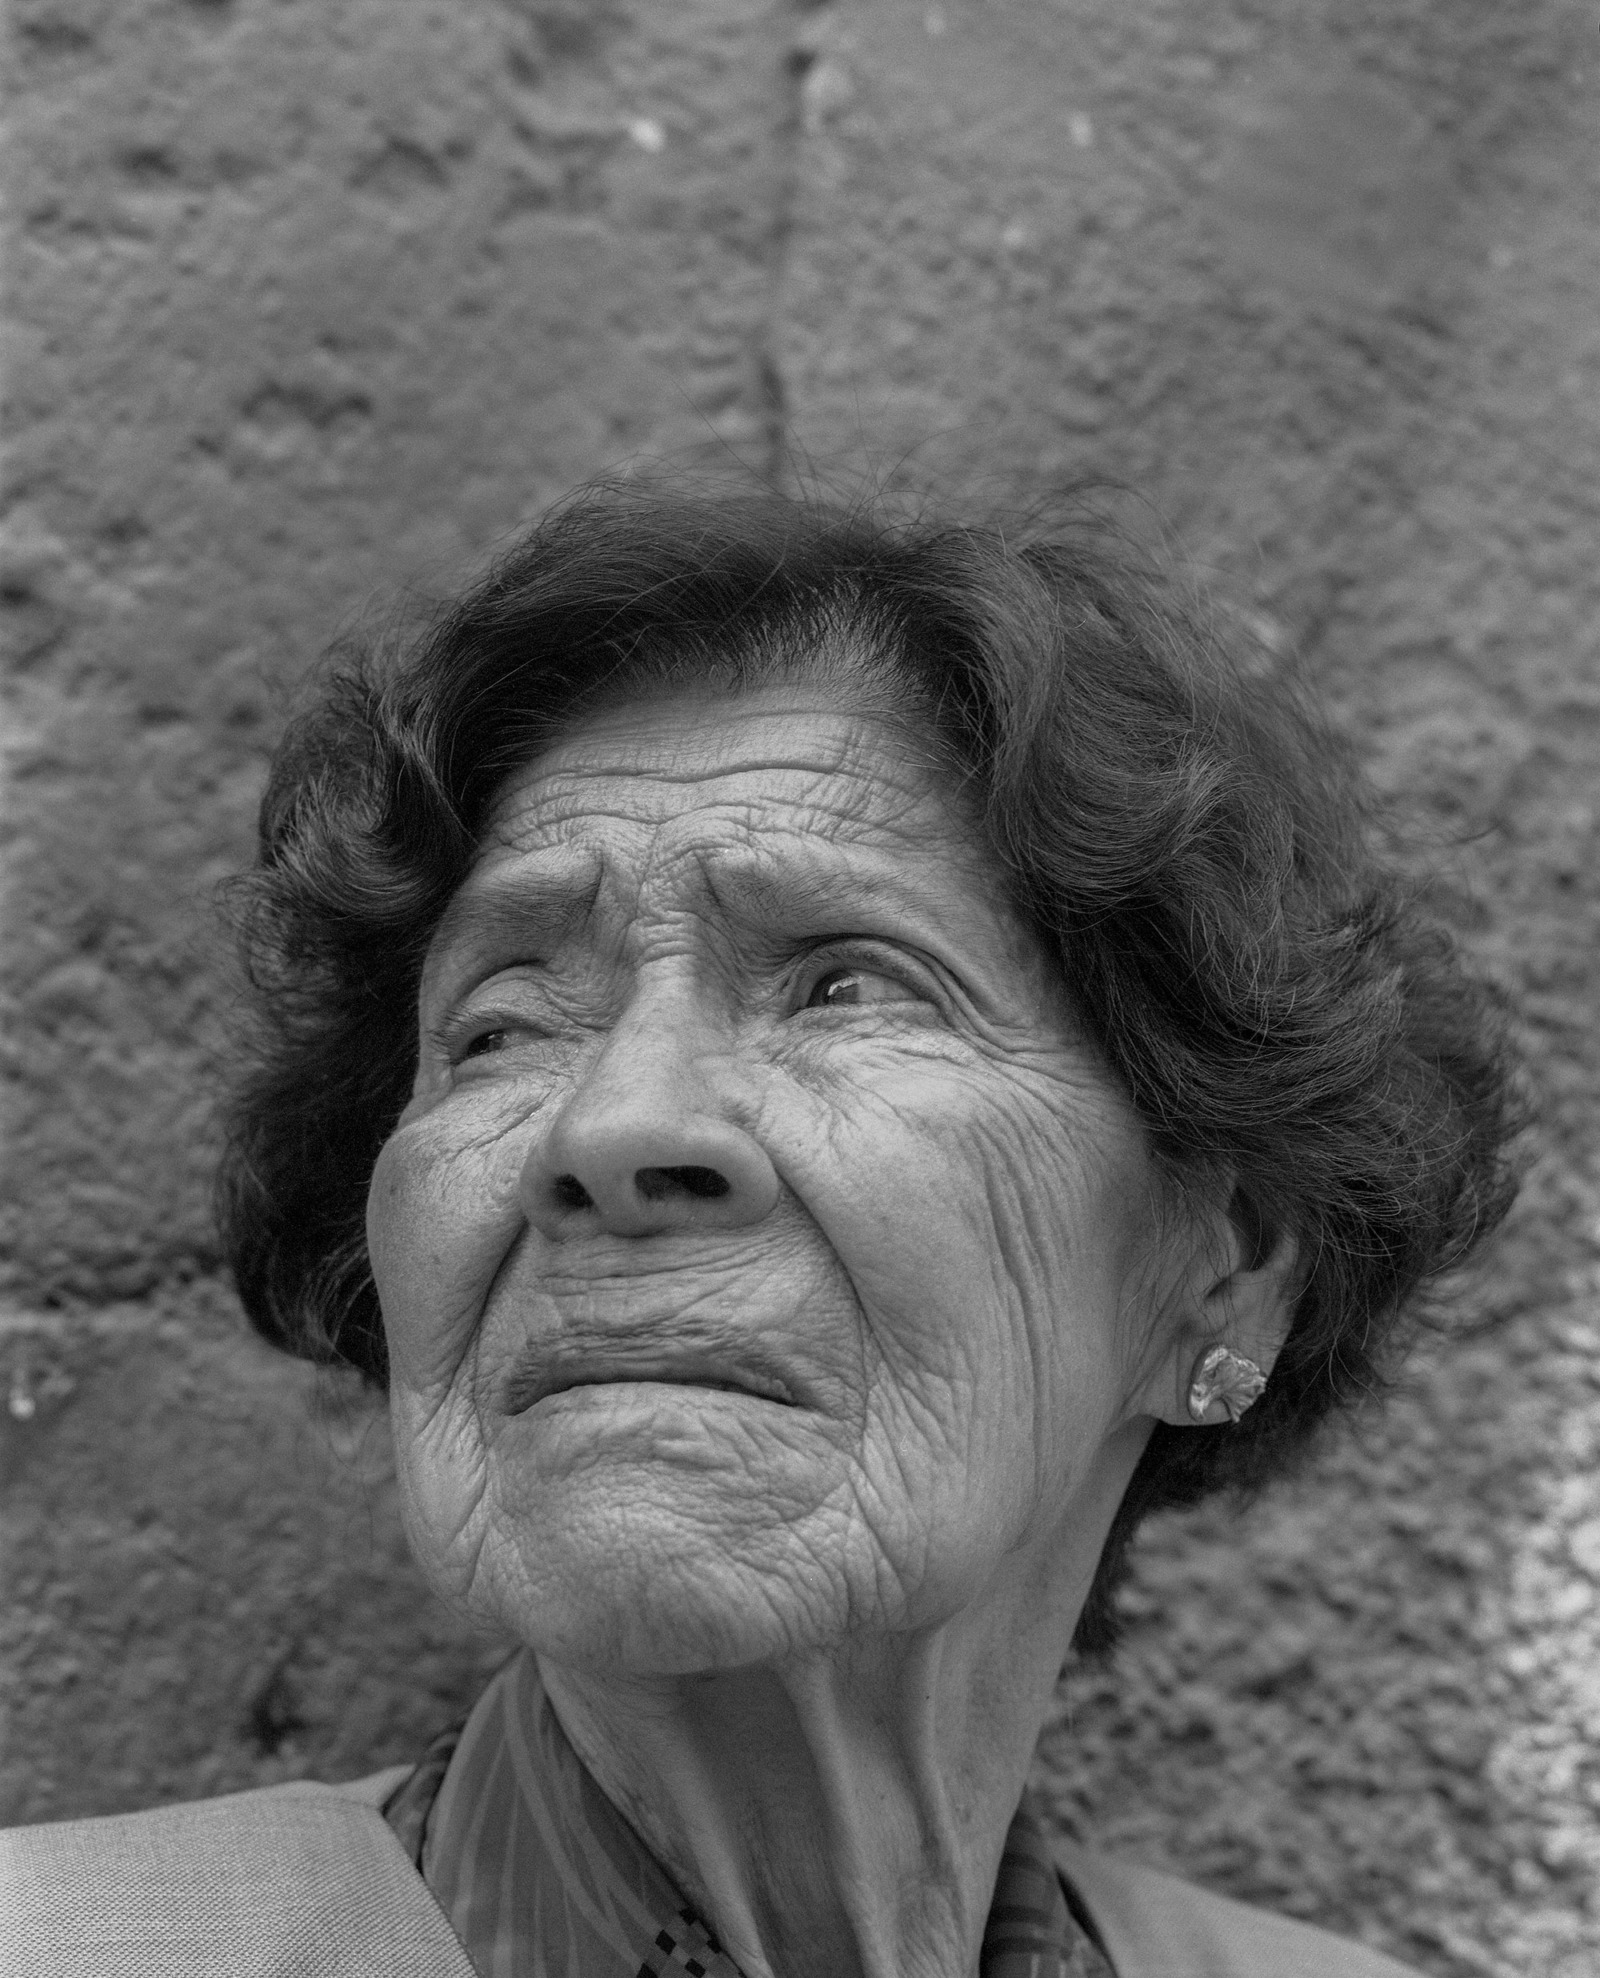 A portrait of an old woman. Her deeply wrinkled skin merges with the concrete behind her.